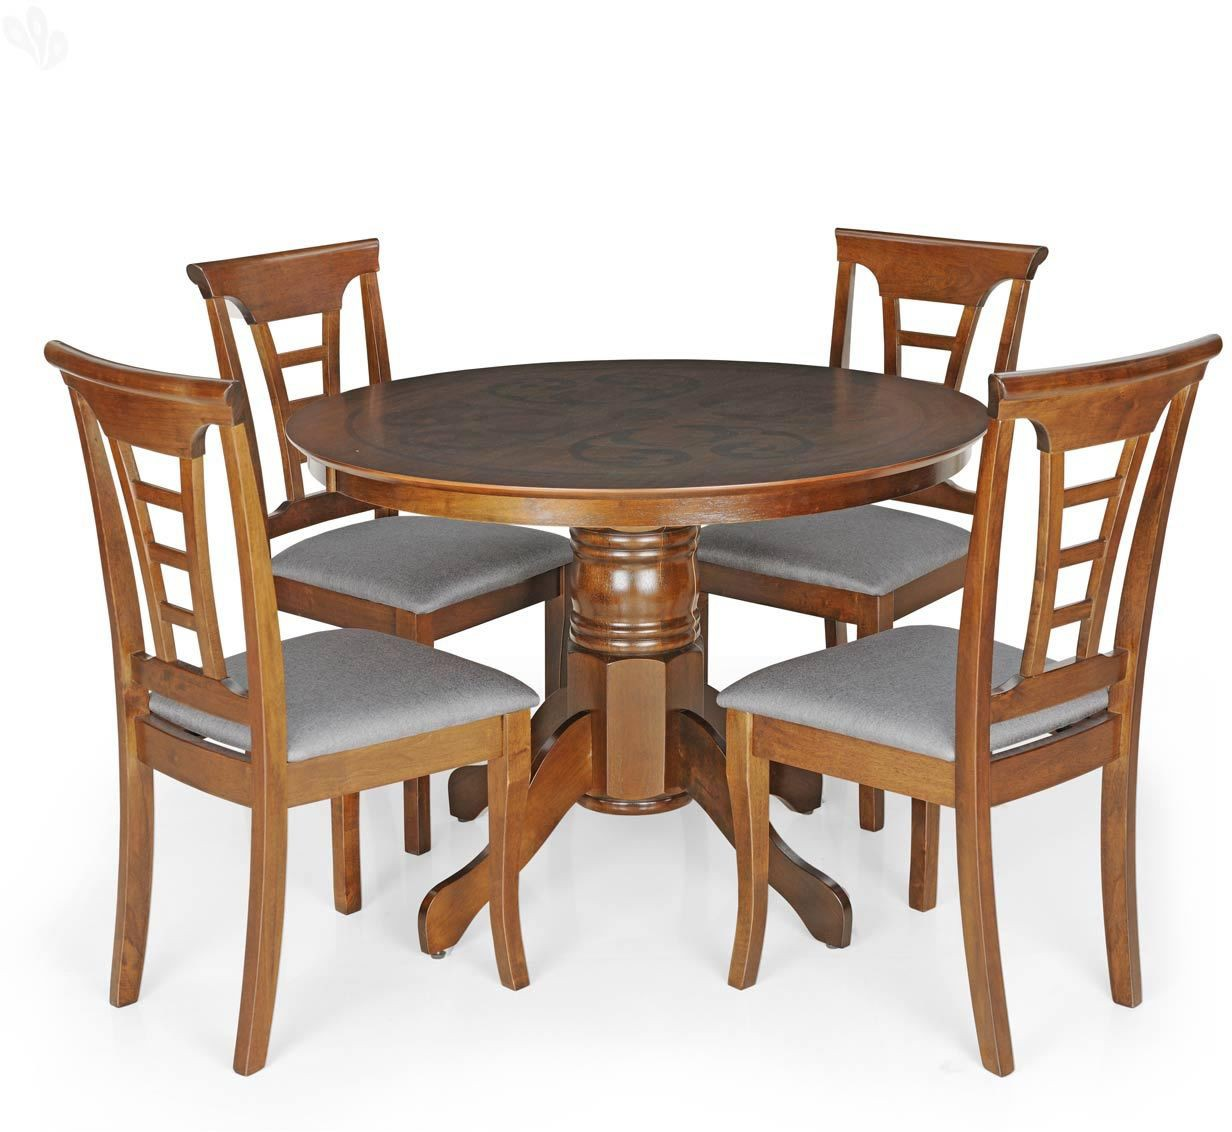 View Berlynoak Cherry Engineered Wood 4 Seater Dining Set(Finish Color - Brown) Furniture (Berlynoak)